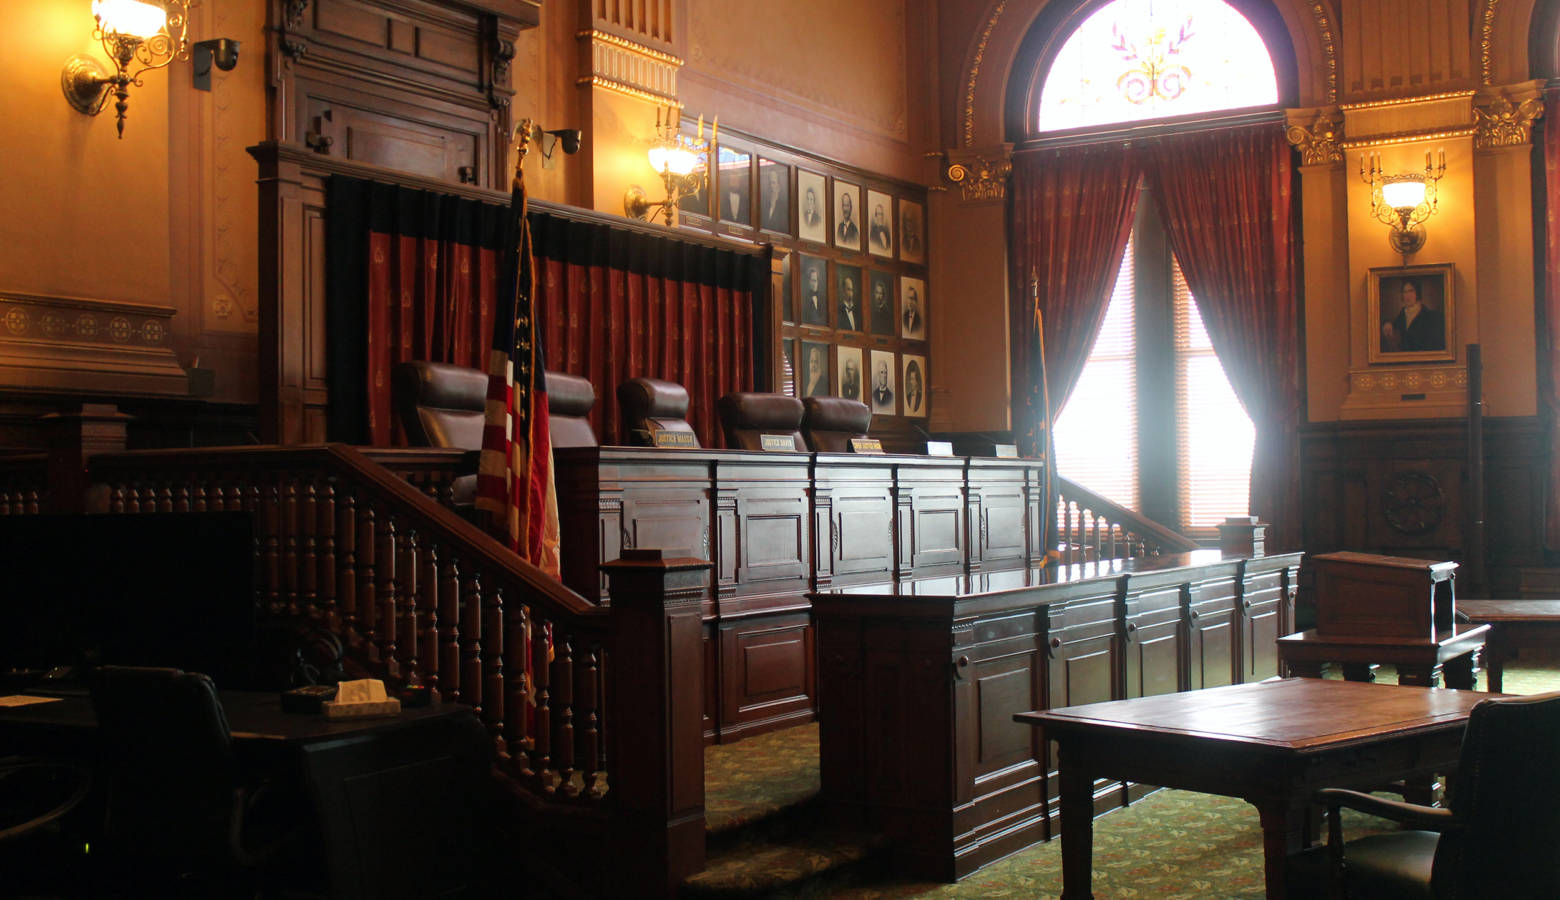 The Indiana Supreme Court chamber. (Lauren Chapman/IPB News)